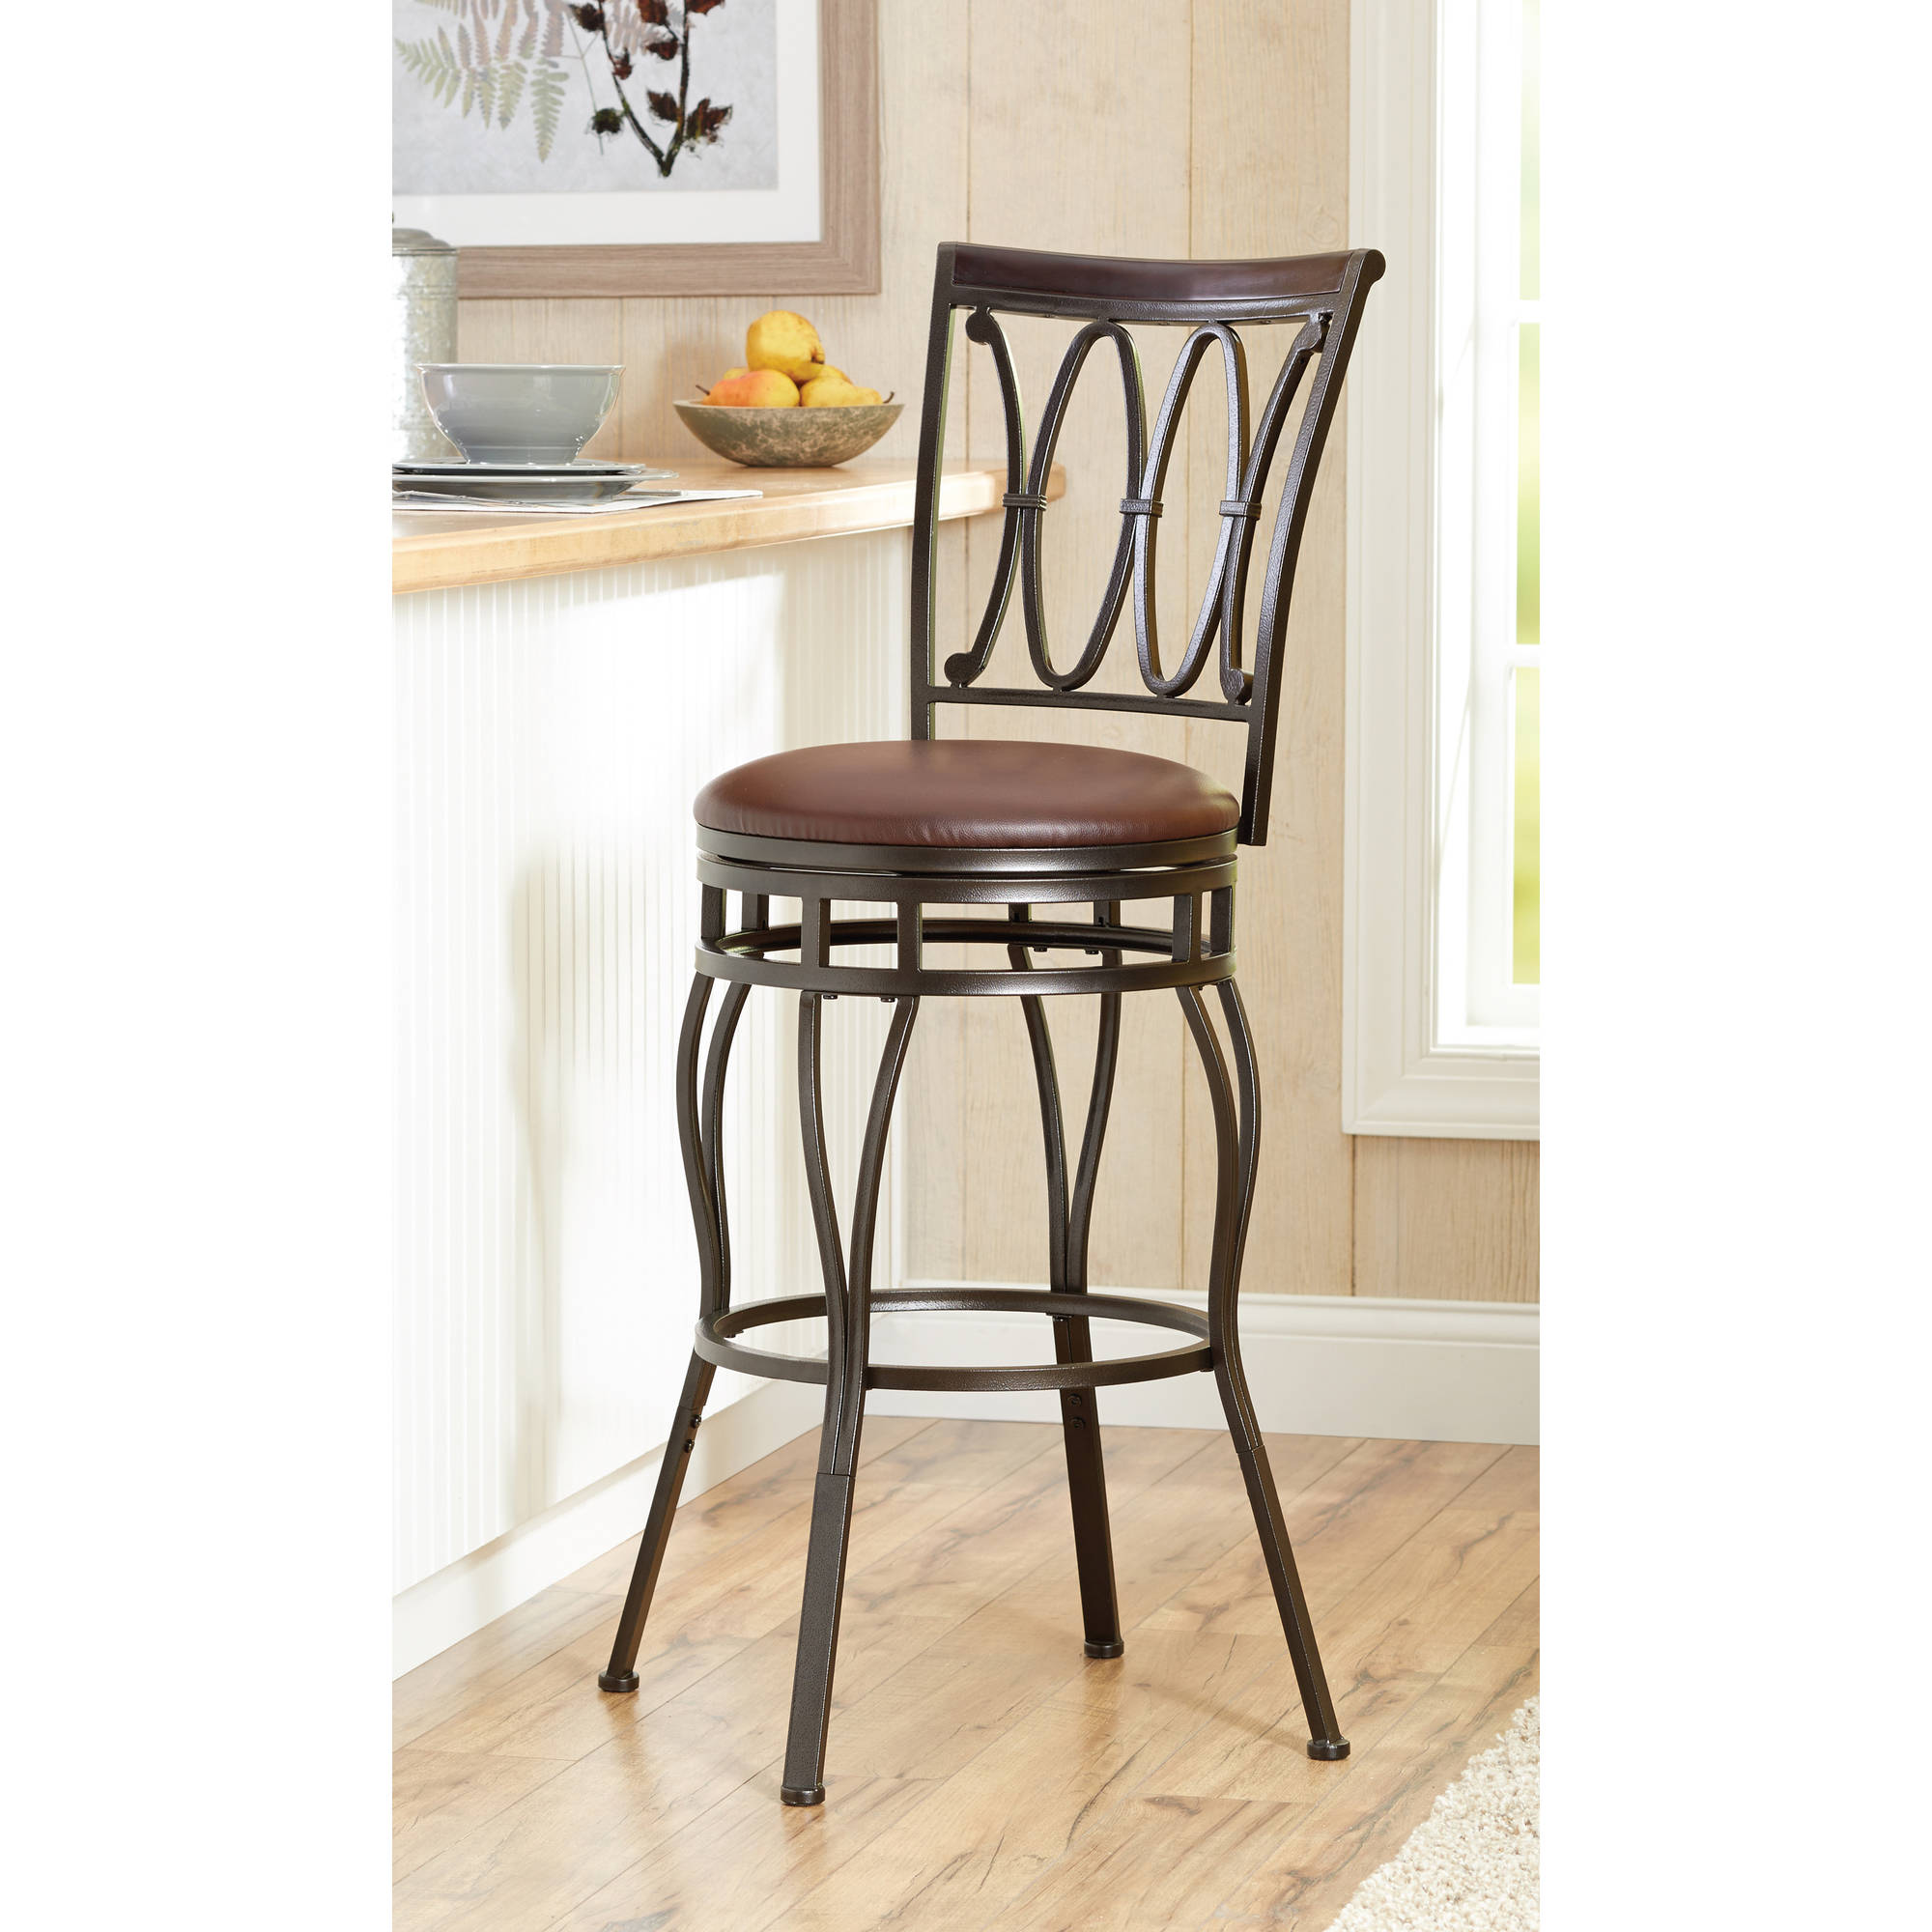 Better Homes and Gardens Adjustable Barstool  Oil Rubbed Bronze    Walmart com. Better Homes and Gardens Adjustable Barstool  Oil Rubbed Bronze